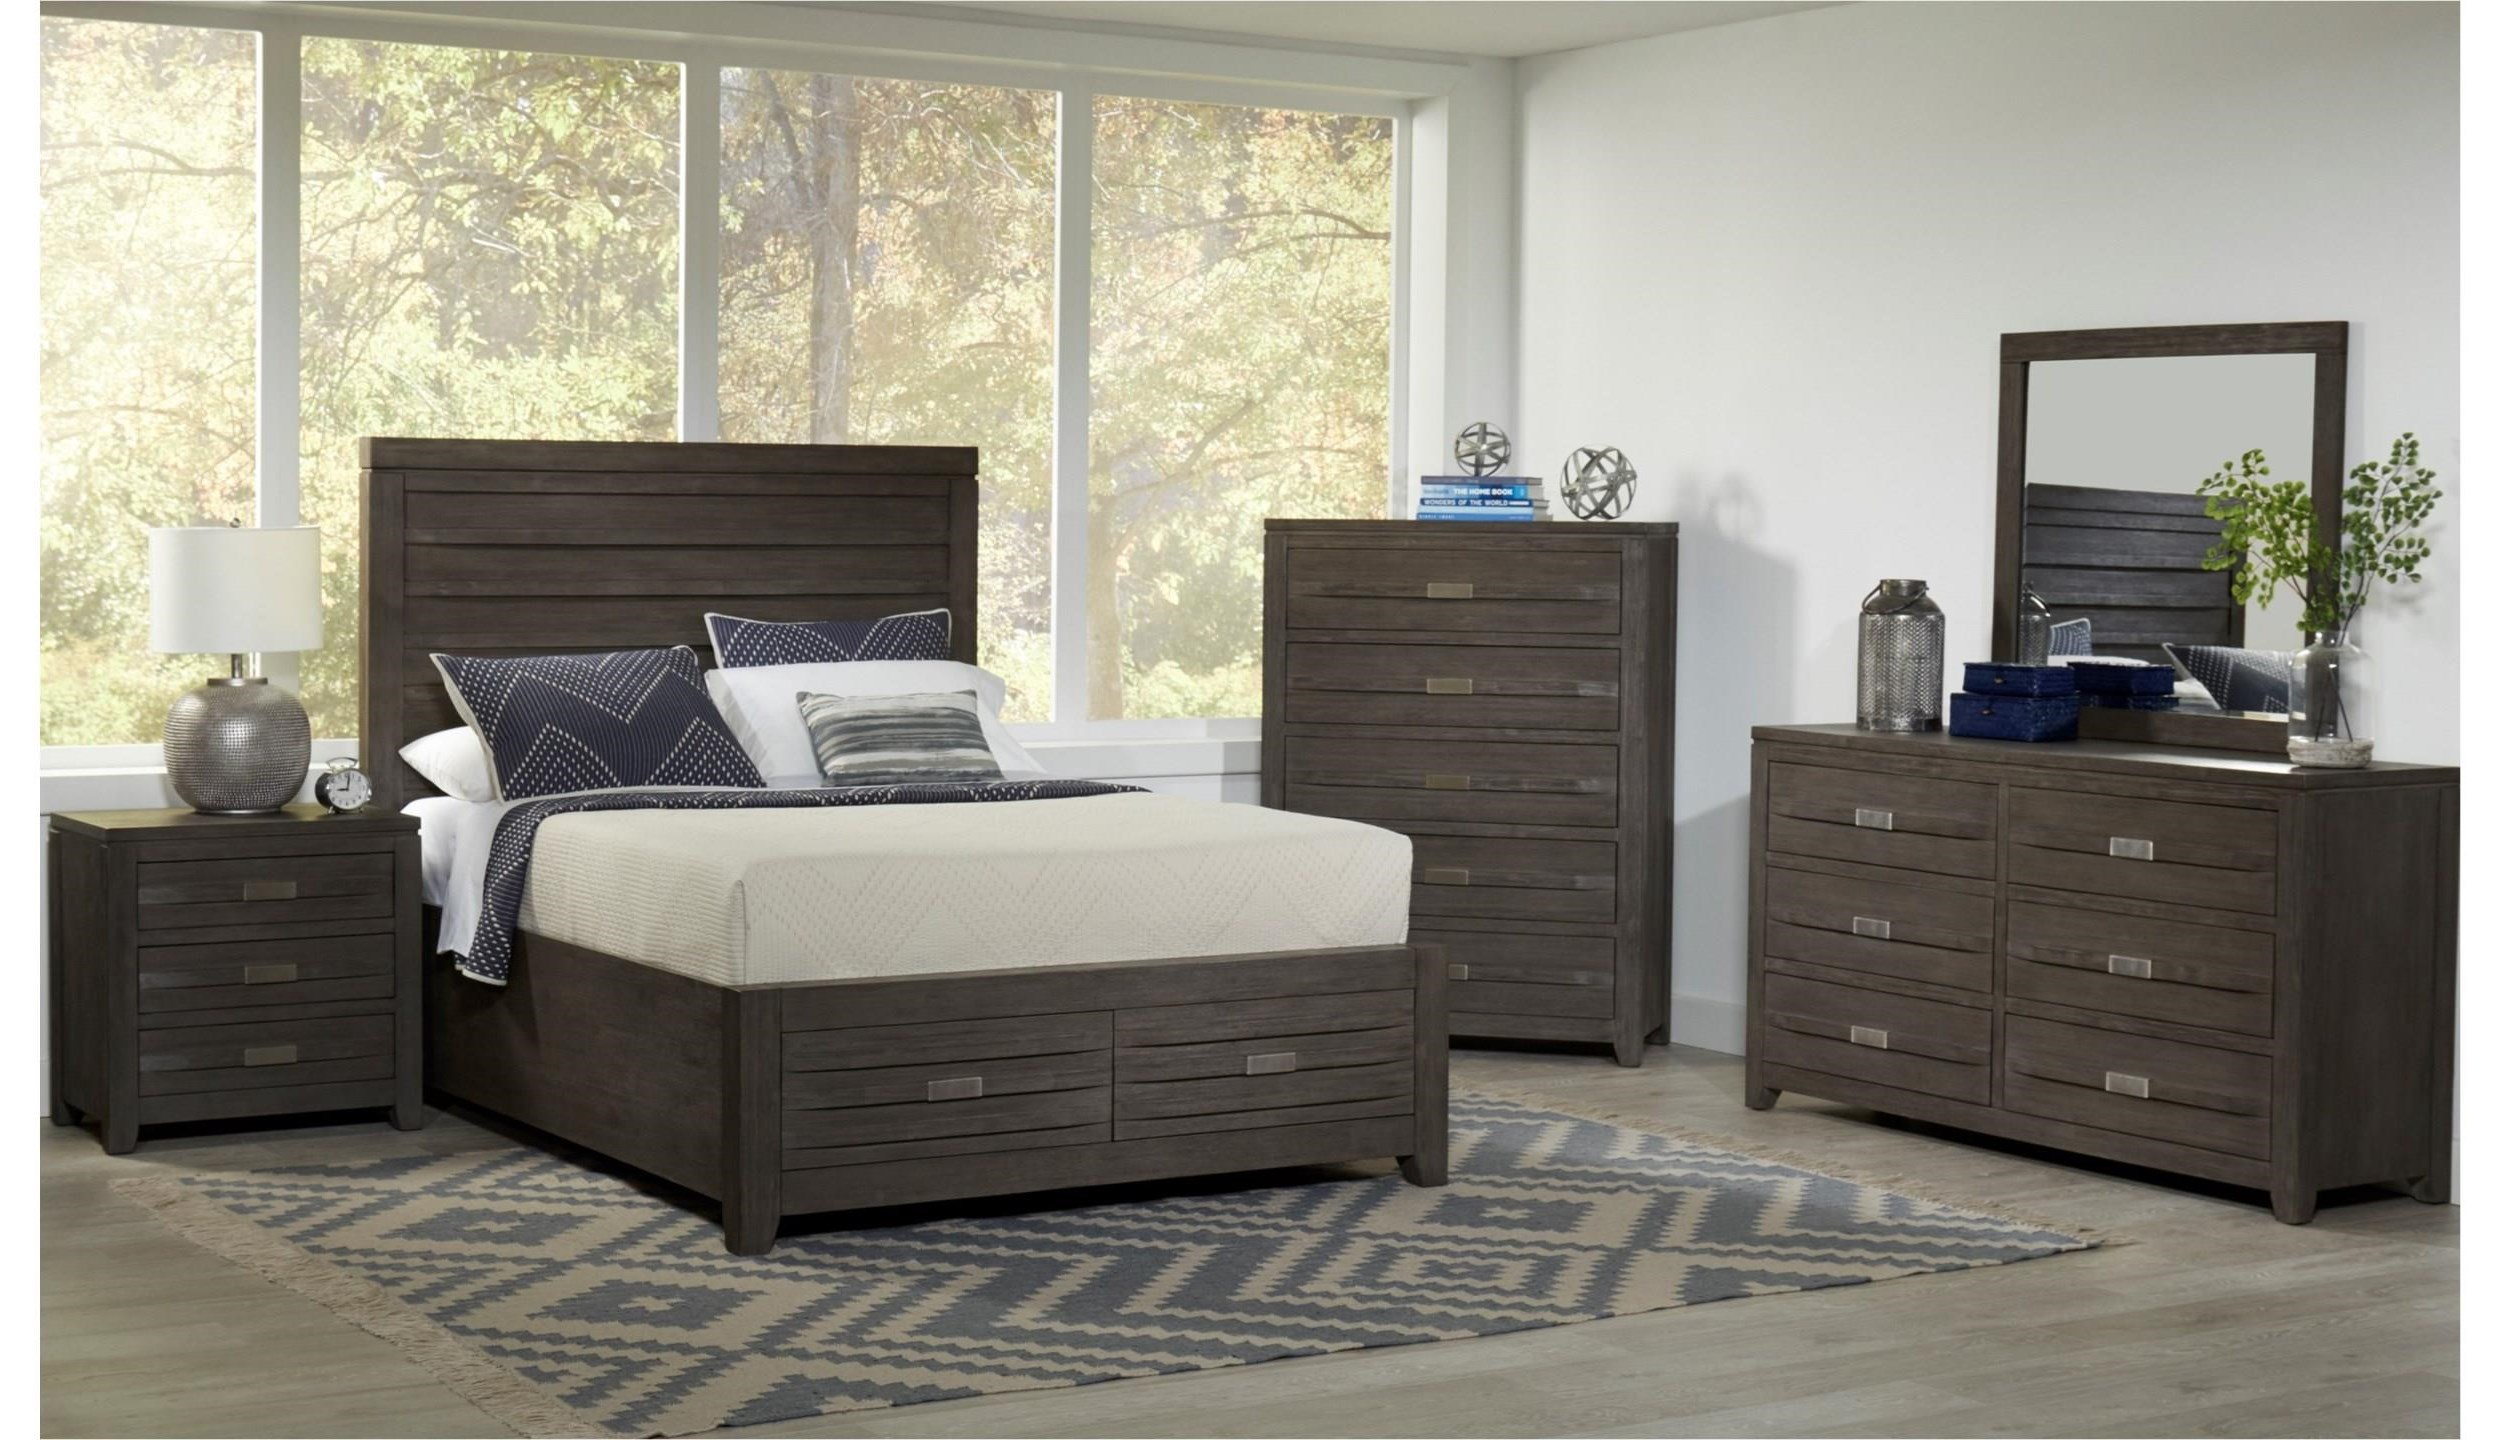 Altamonte  King Bedroom Group by Jofran at Value City Furniture